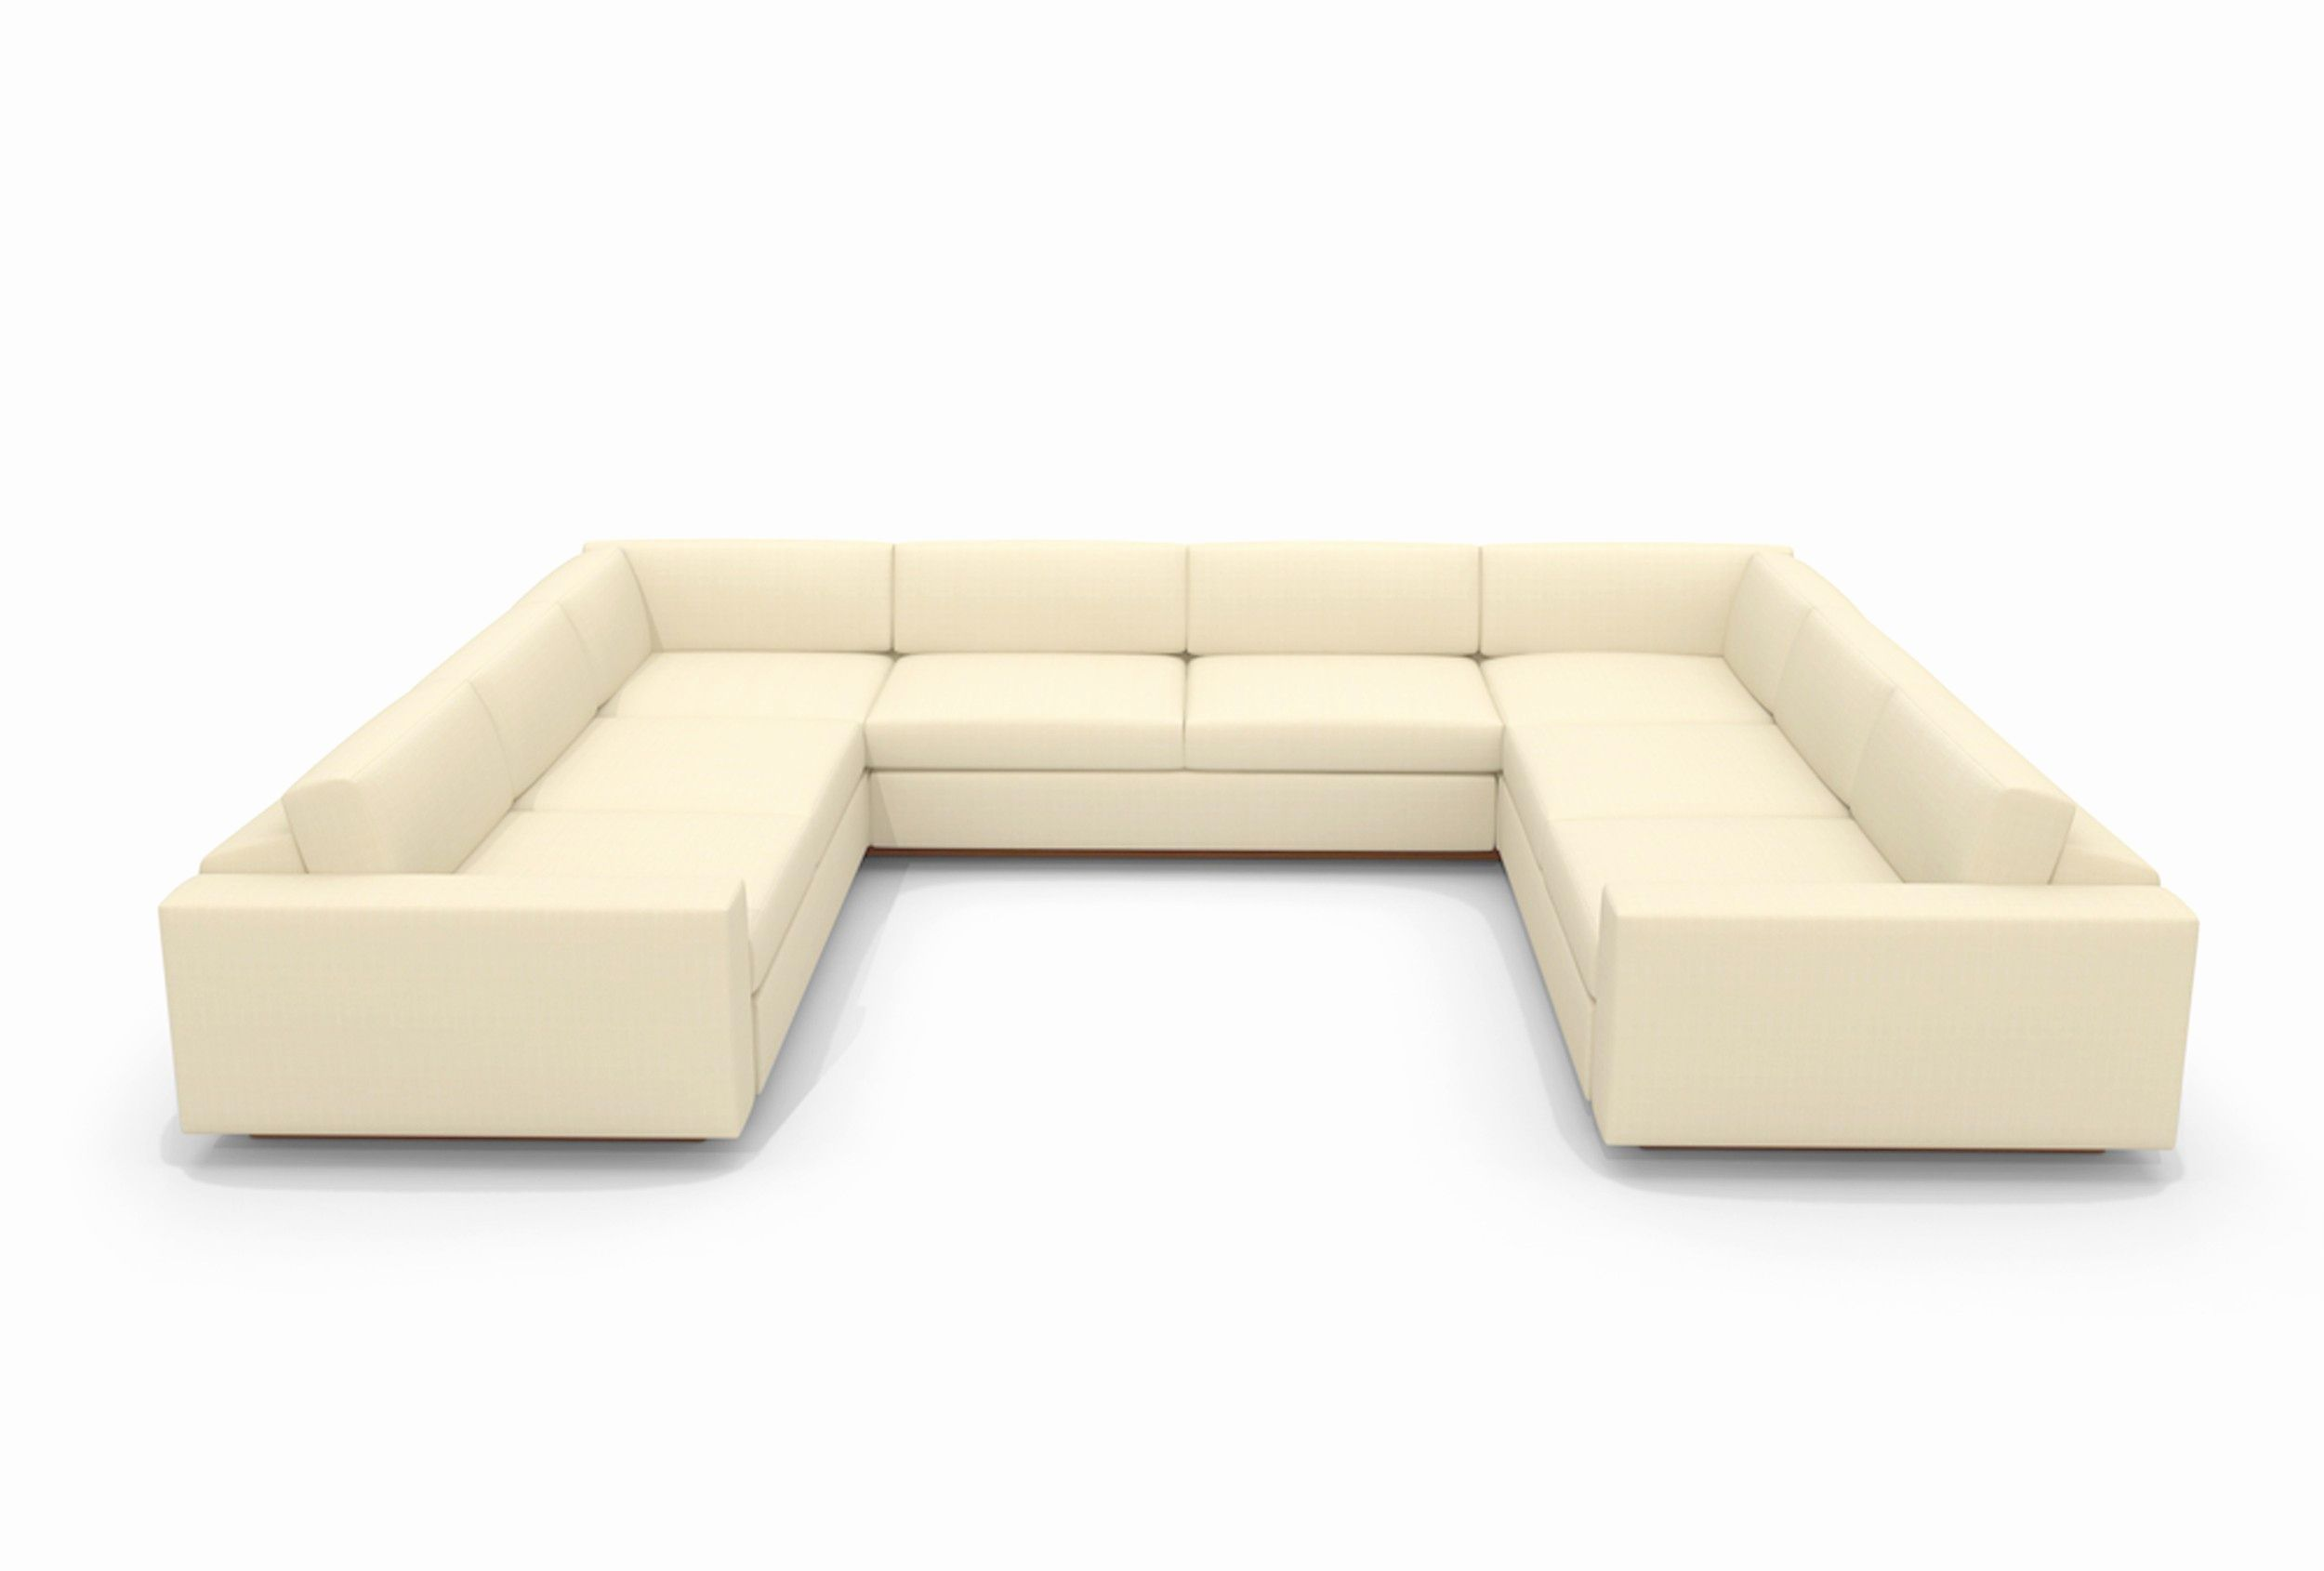 Fresh Cream Colored Sectional sofa Images Cream Colored Sectional